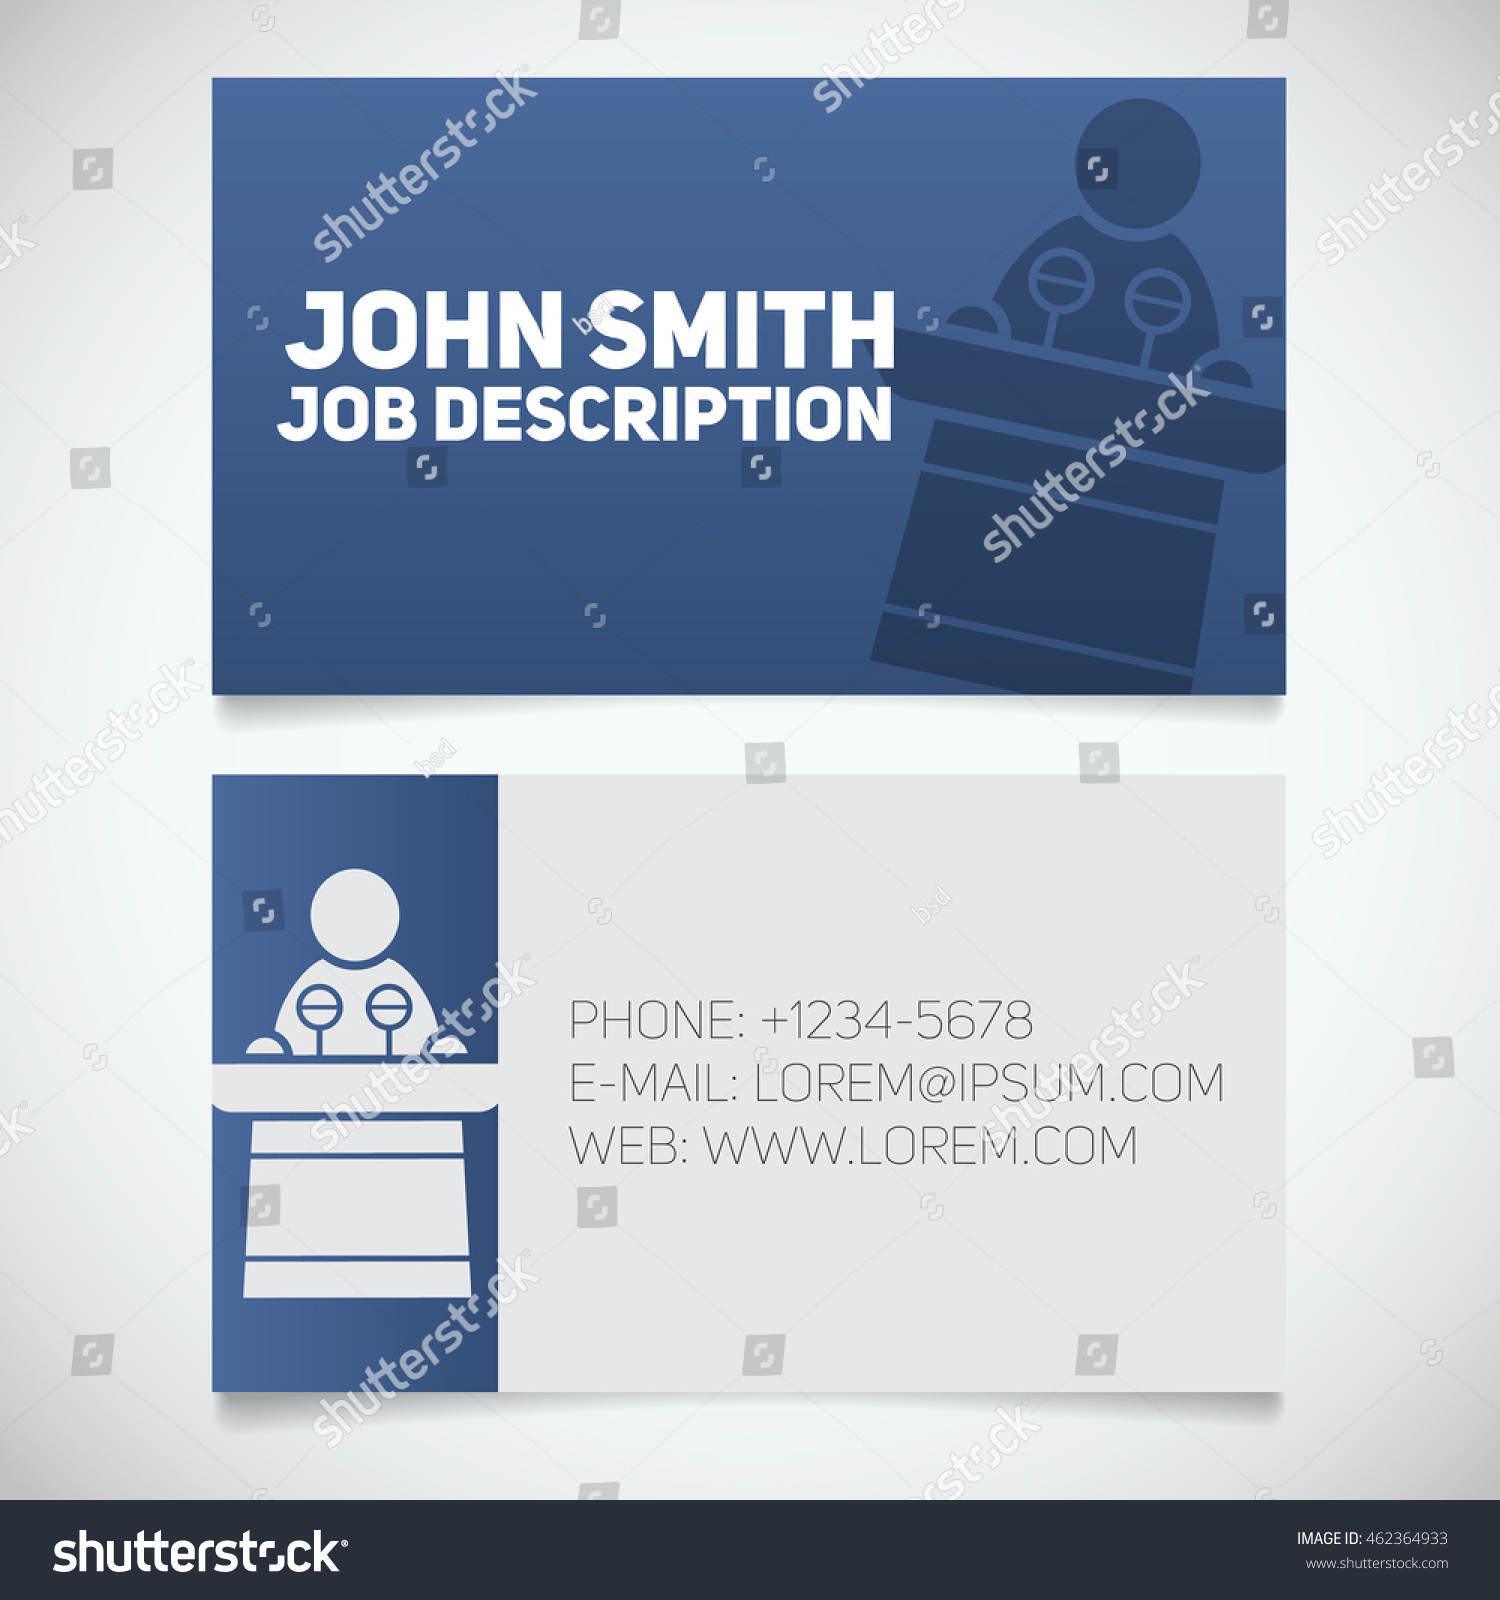 Motivational Speaker Business Cards Image collections - Free ...